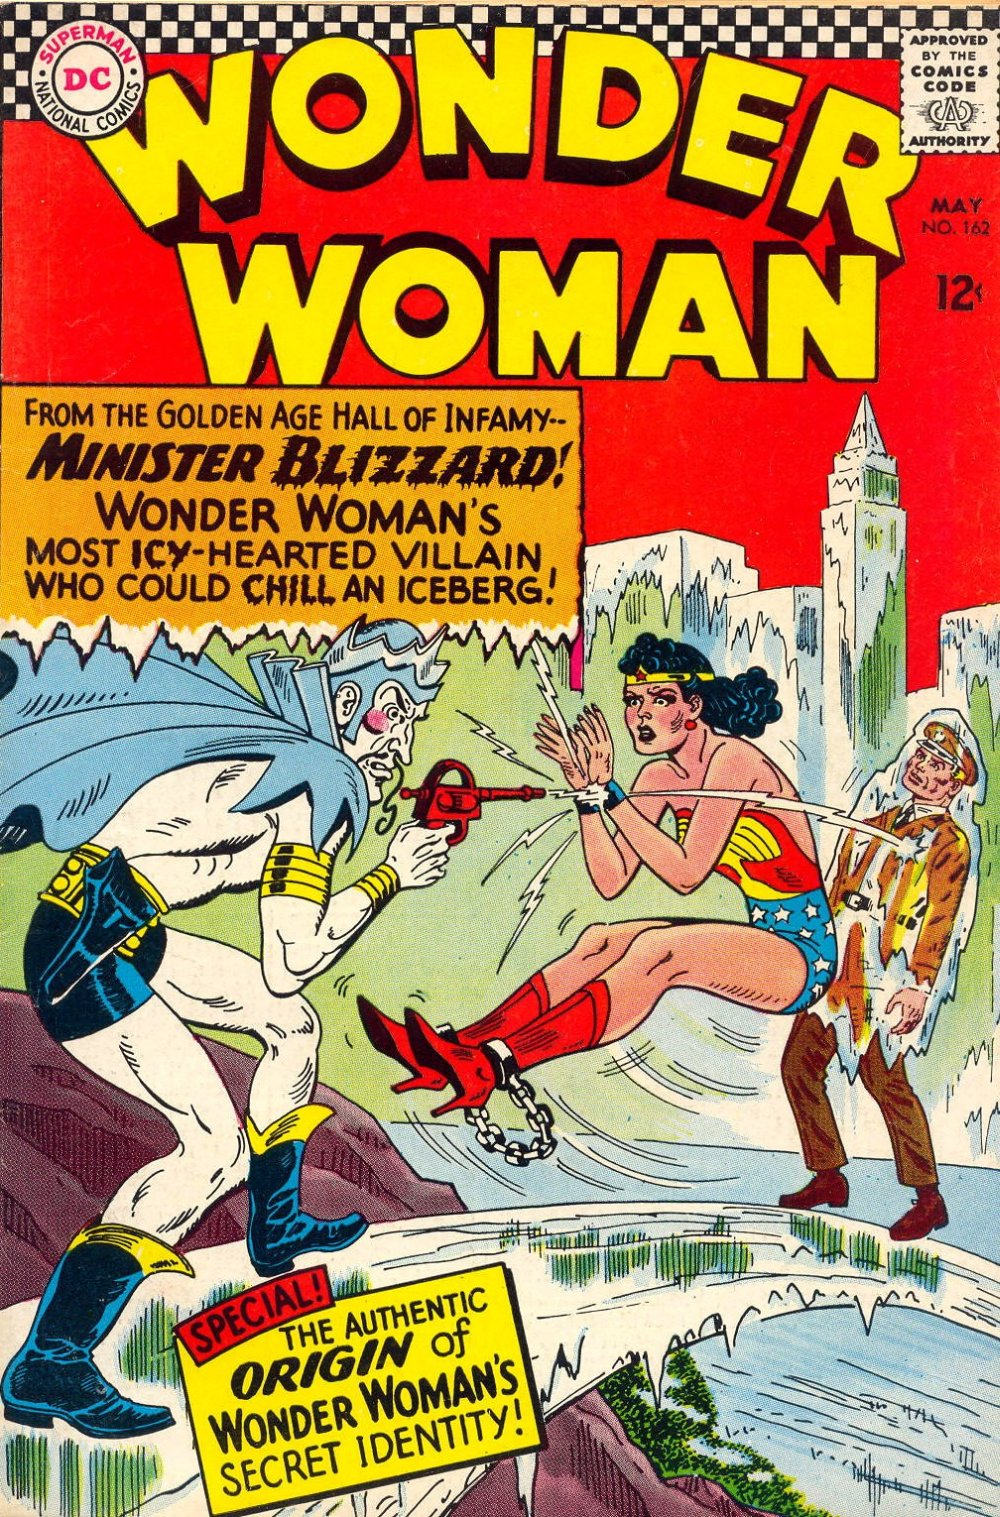 Wonder Woman [DC] V1 0162.jpg